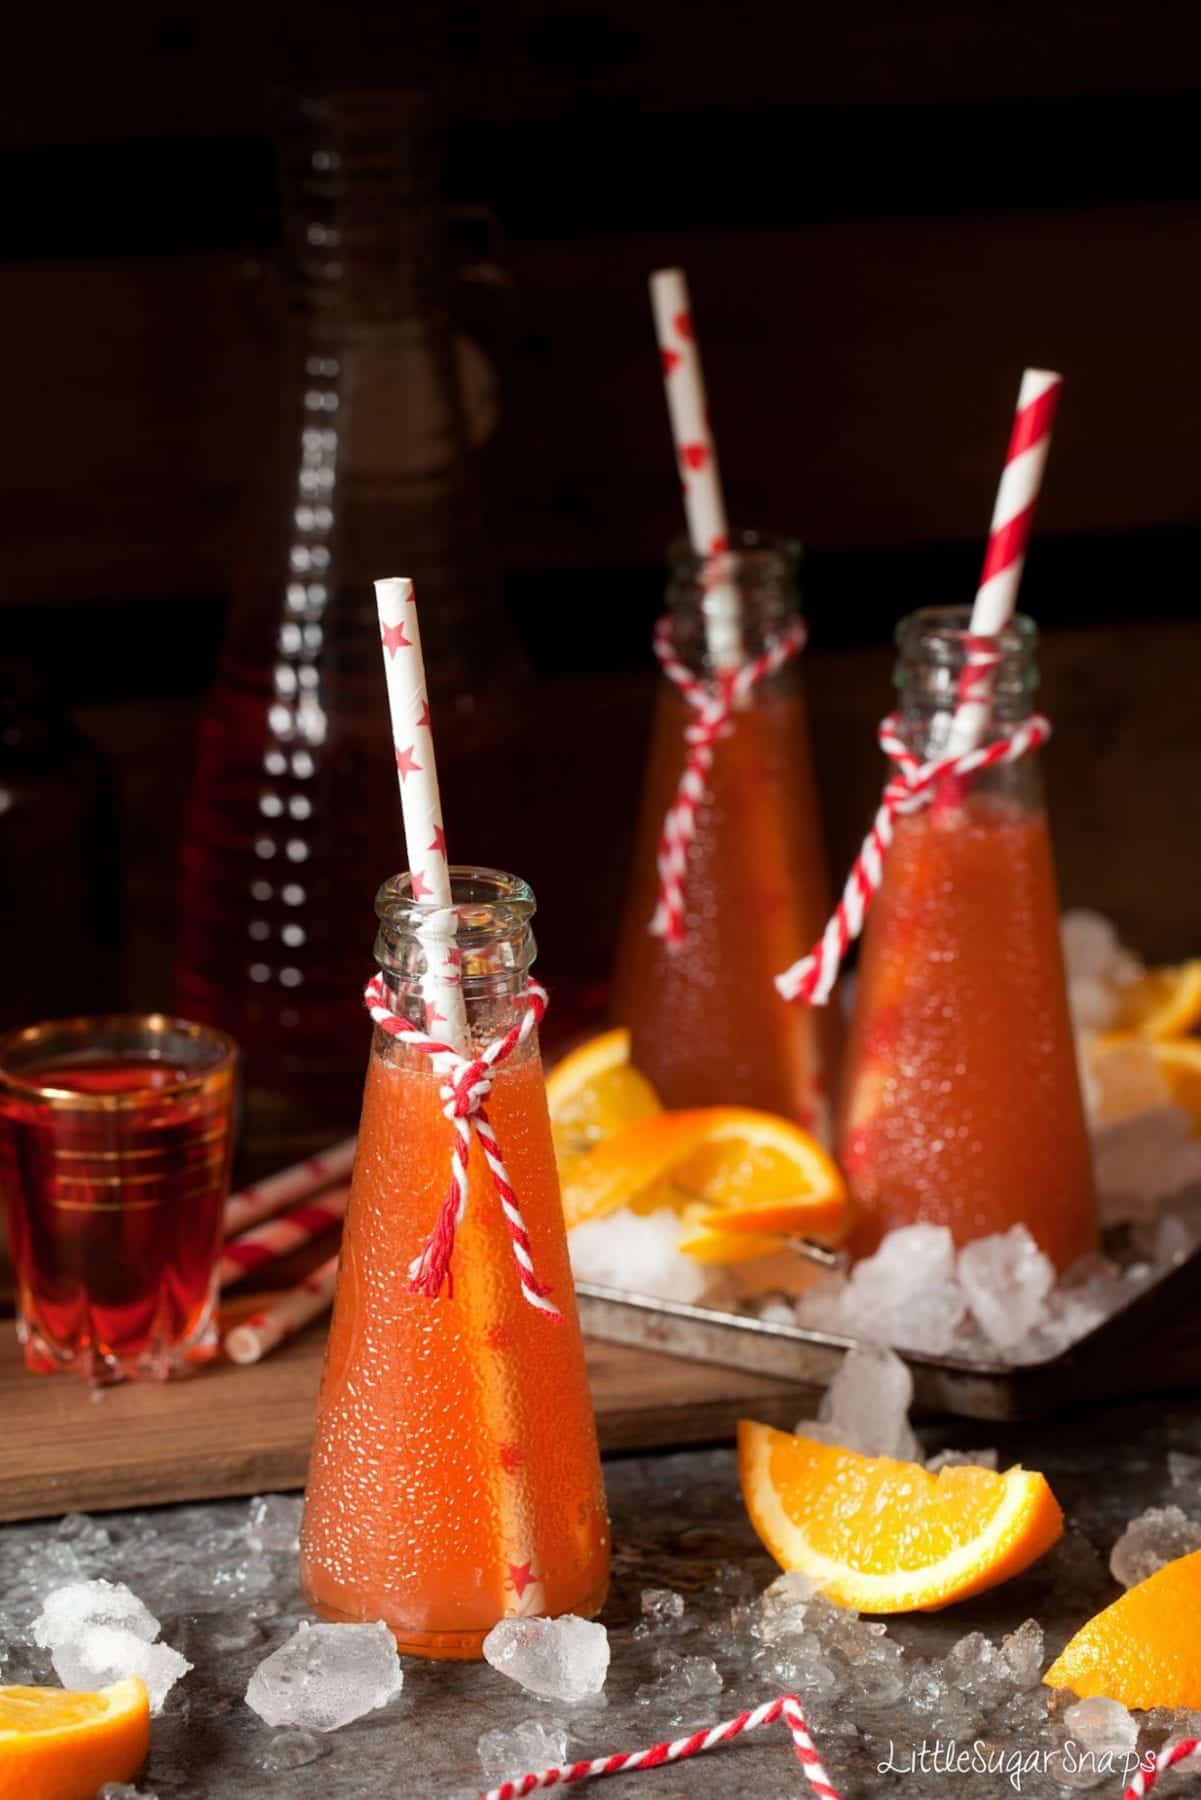 Bottles of orange cocktail with orange wedges and aperol alongside.